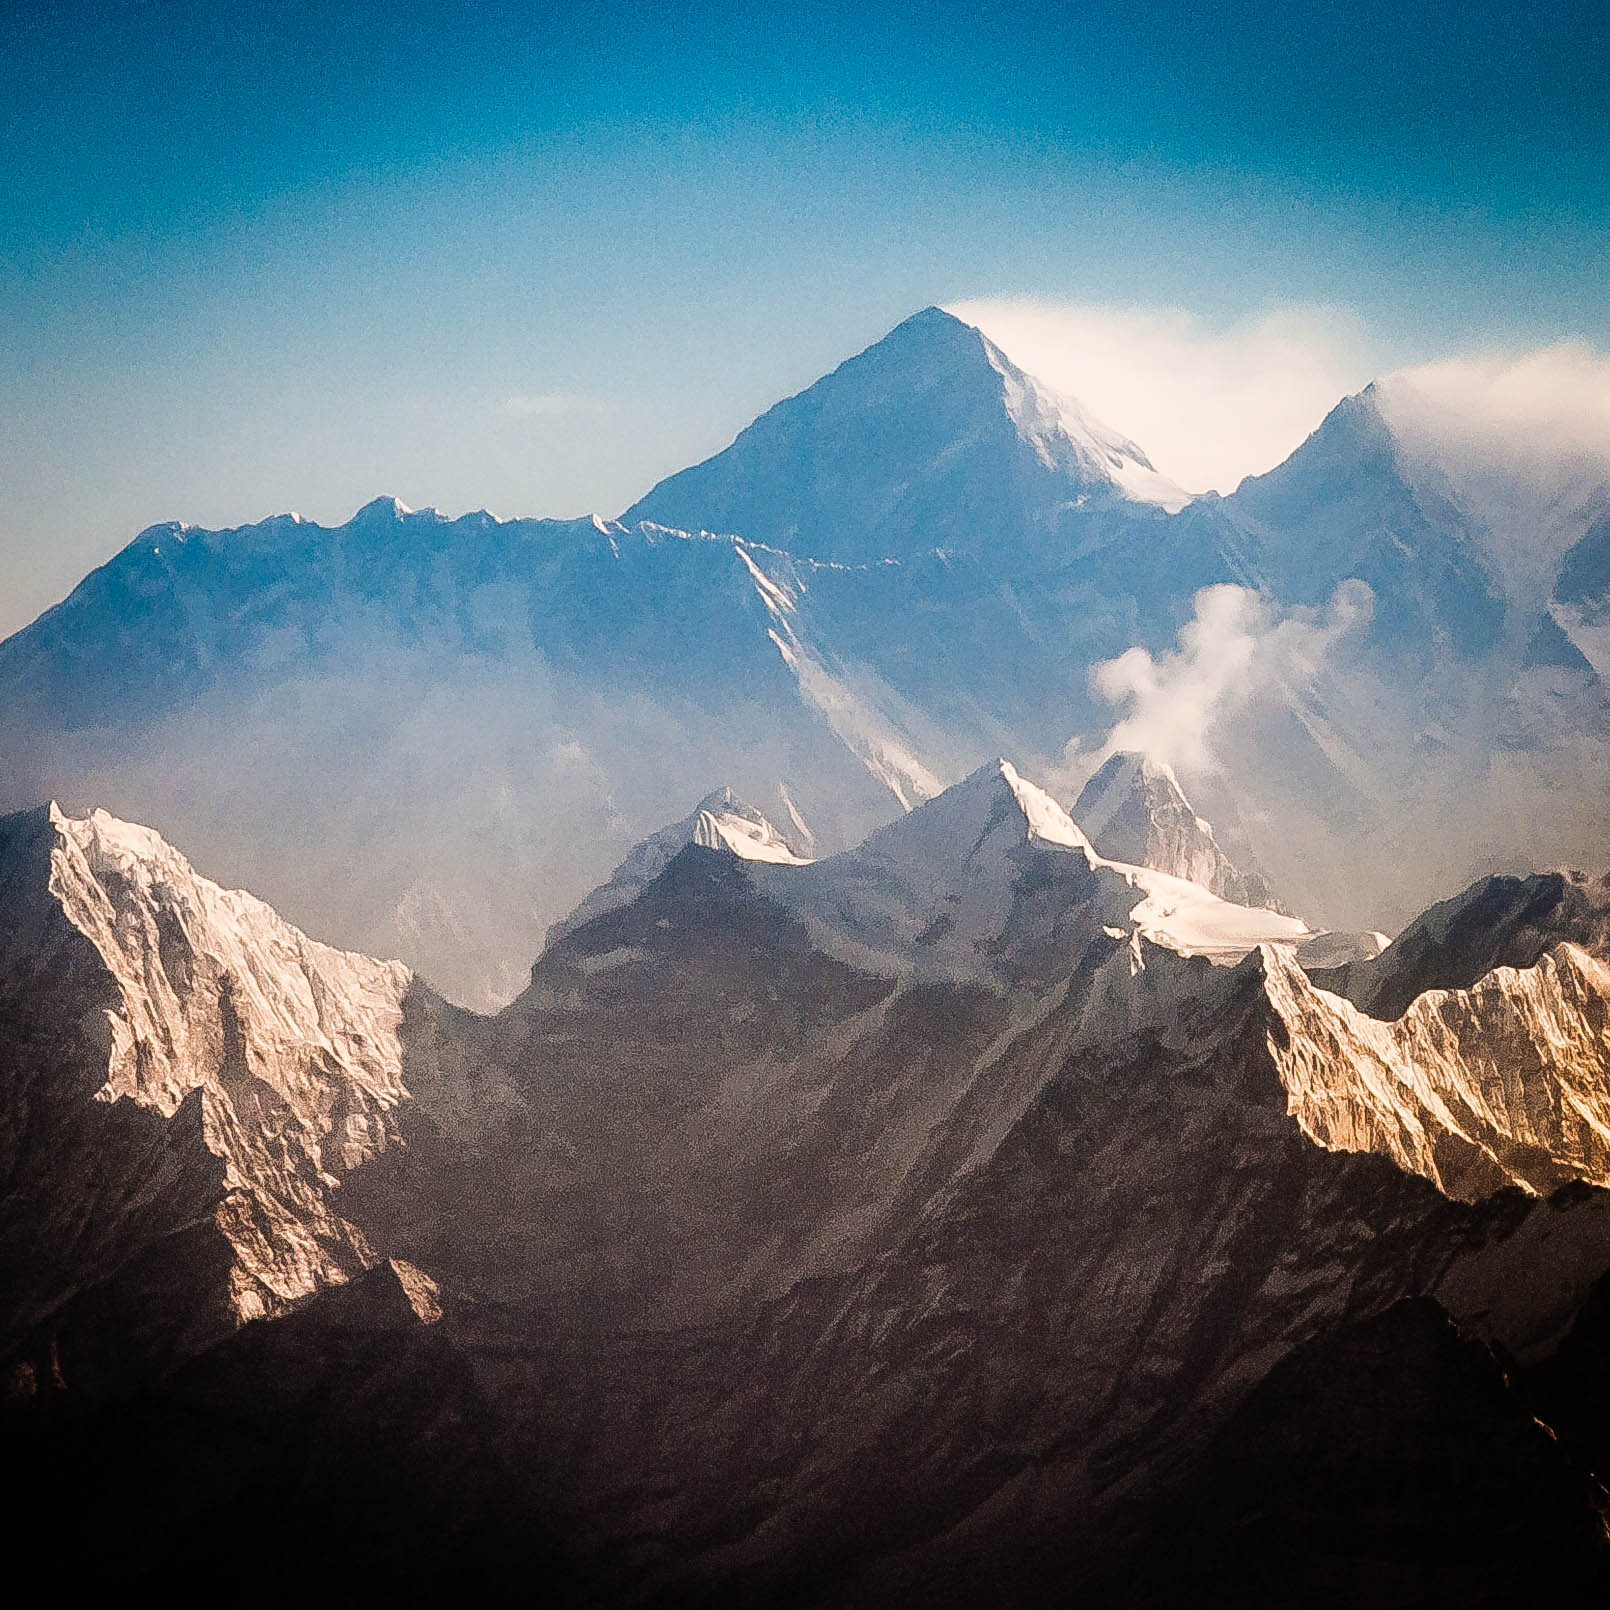 Mt. Everest, Lohtse and Nupse in the early morning